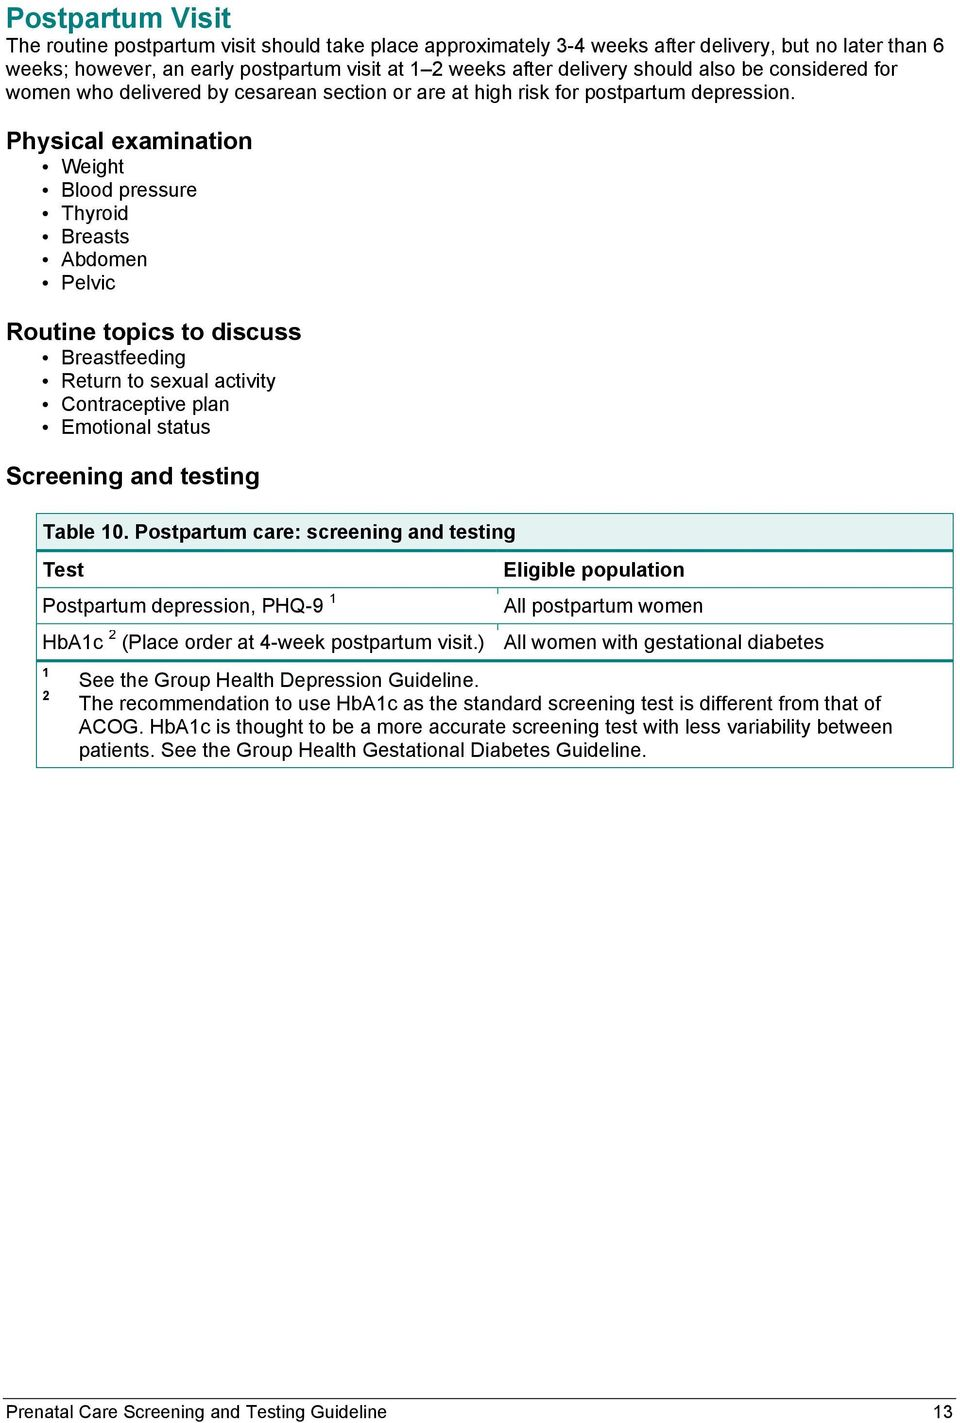 Prenatal Care Screening and Testing Guideline - PDF